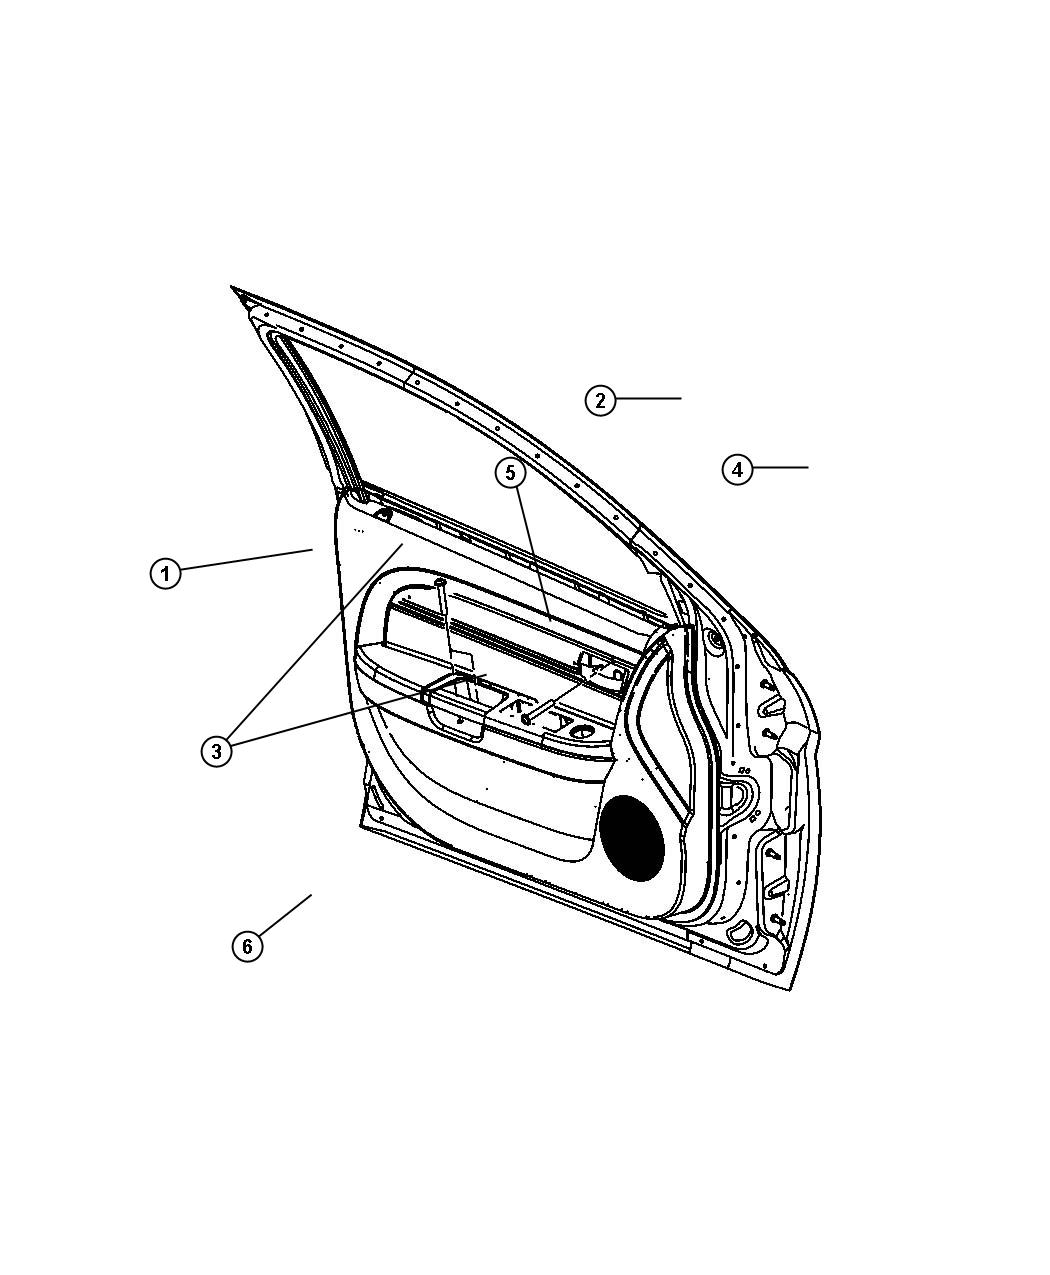 hight resolution of 2008 dodge avenger thermostat replacement diagram html 2004 dodge intrepid engine diagram 2000 dodge neon wiring diagram